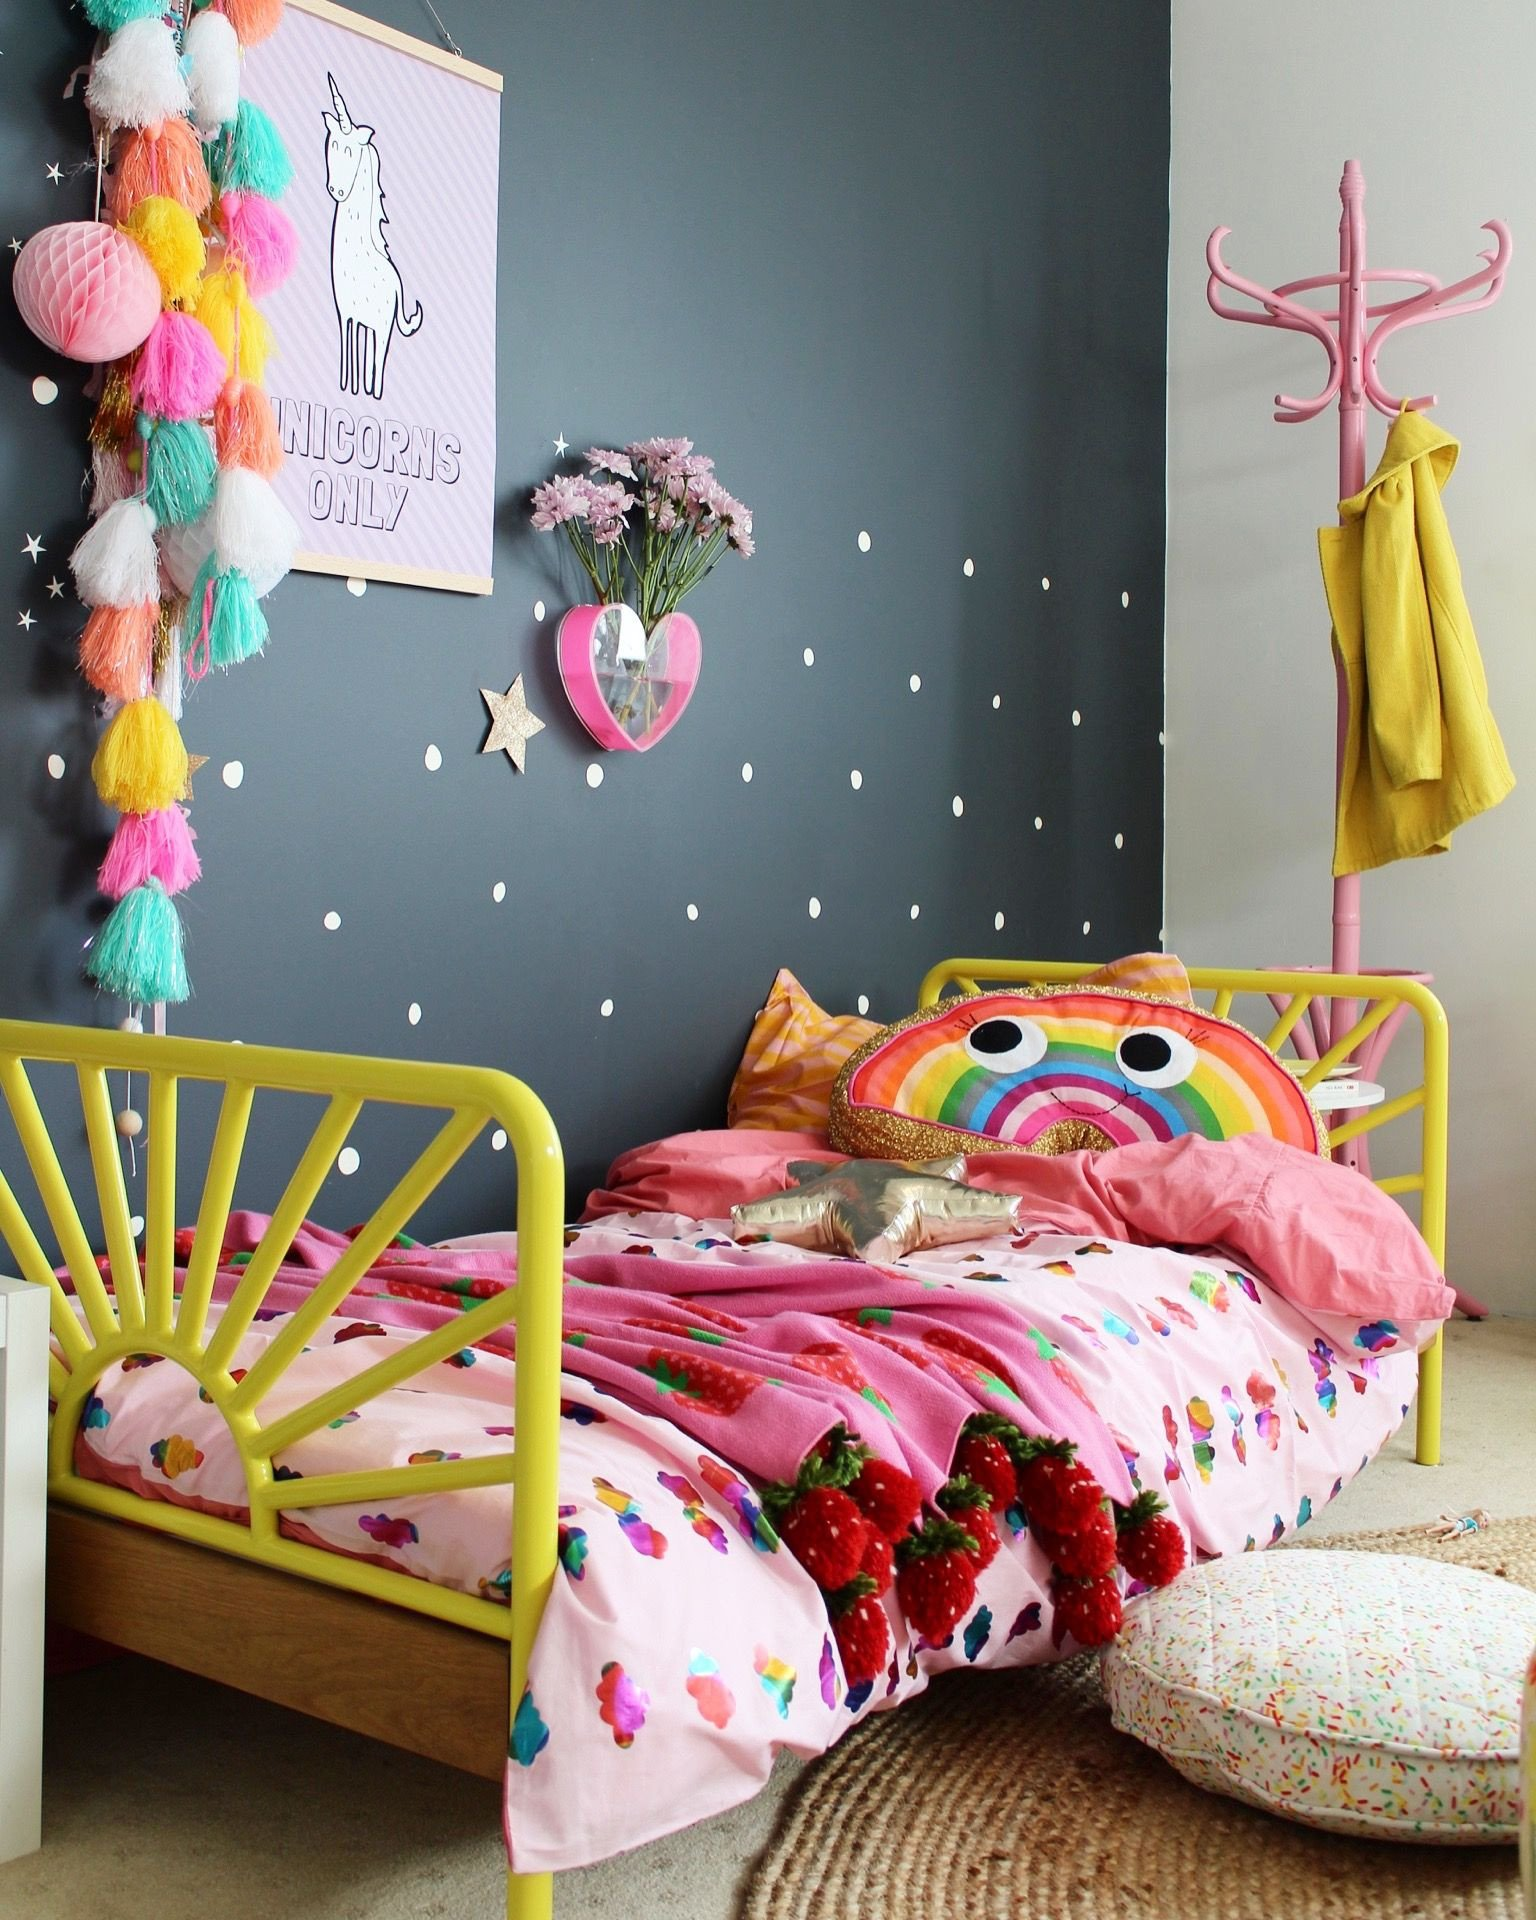 Diy Little Girls Room Decor Best Of 25 Amazing Girls Room Decor Ideas for Teenagers Interiors Children